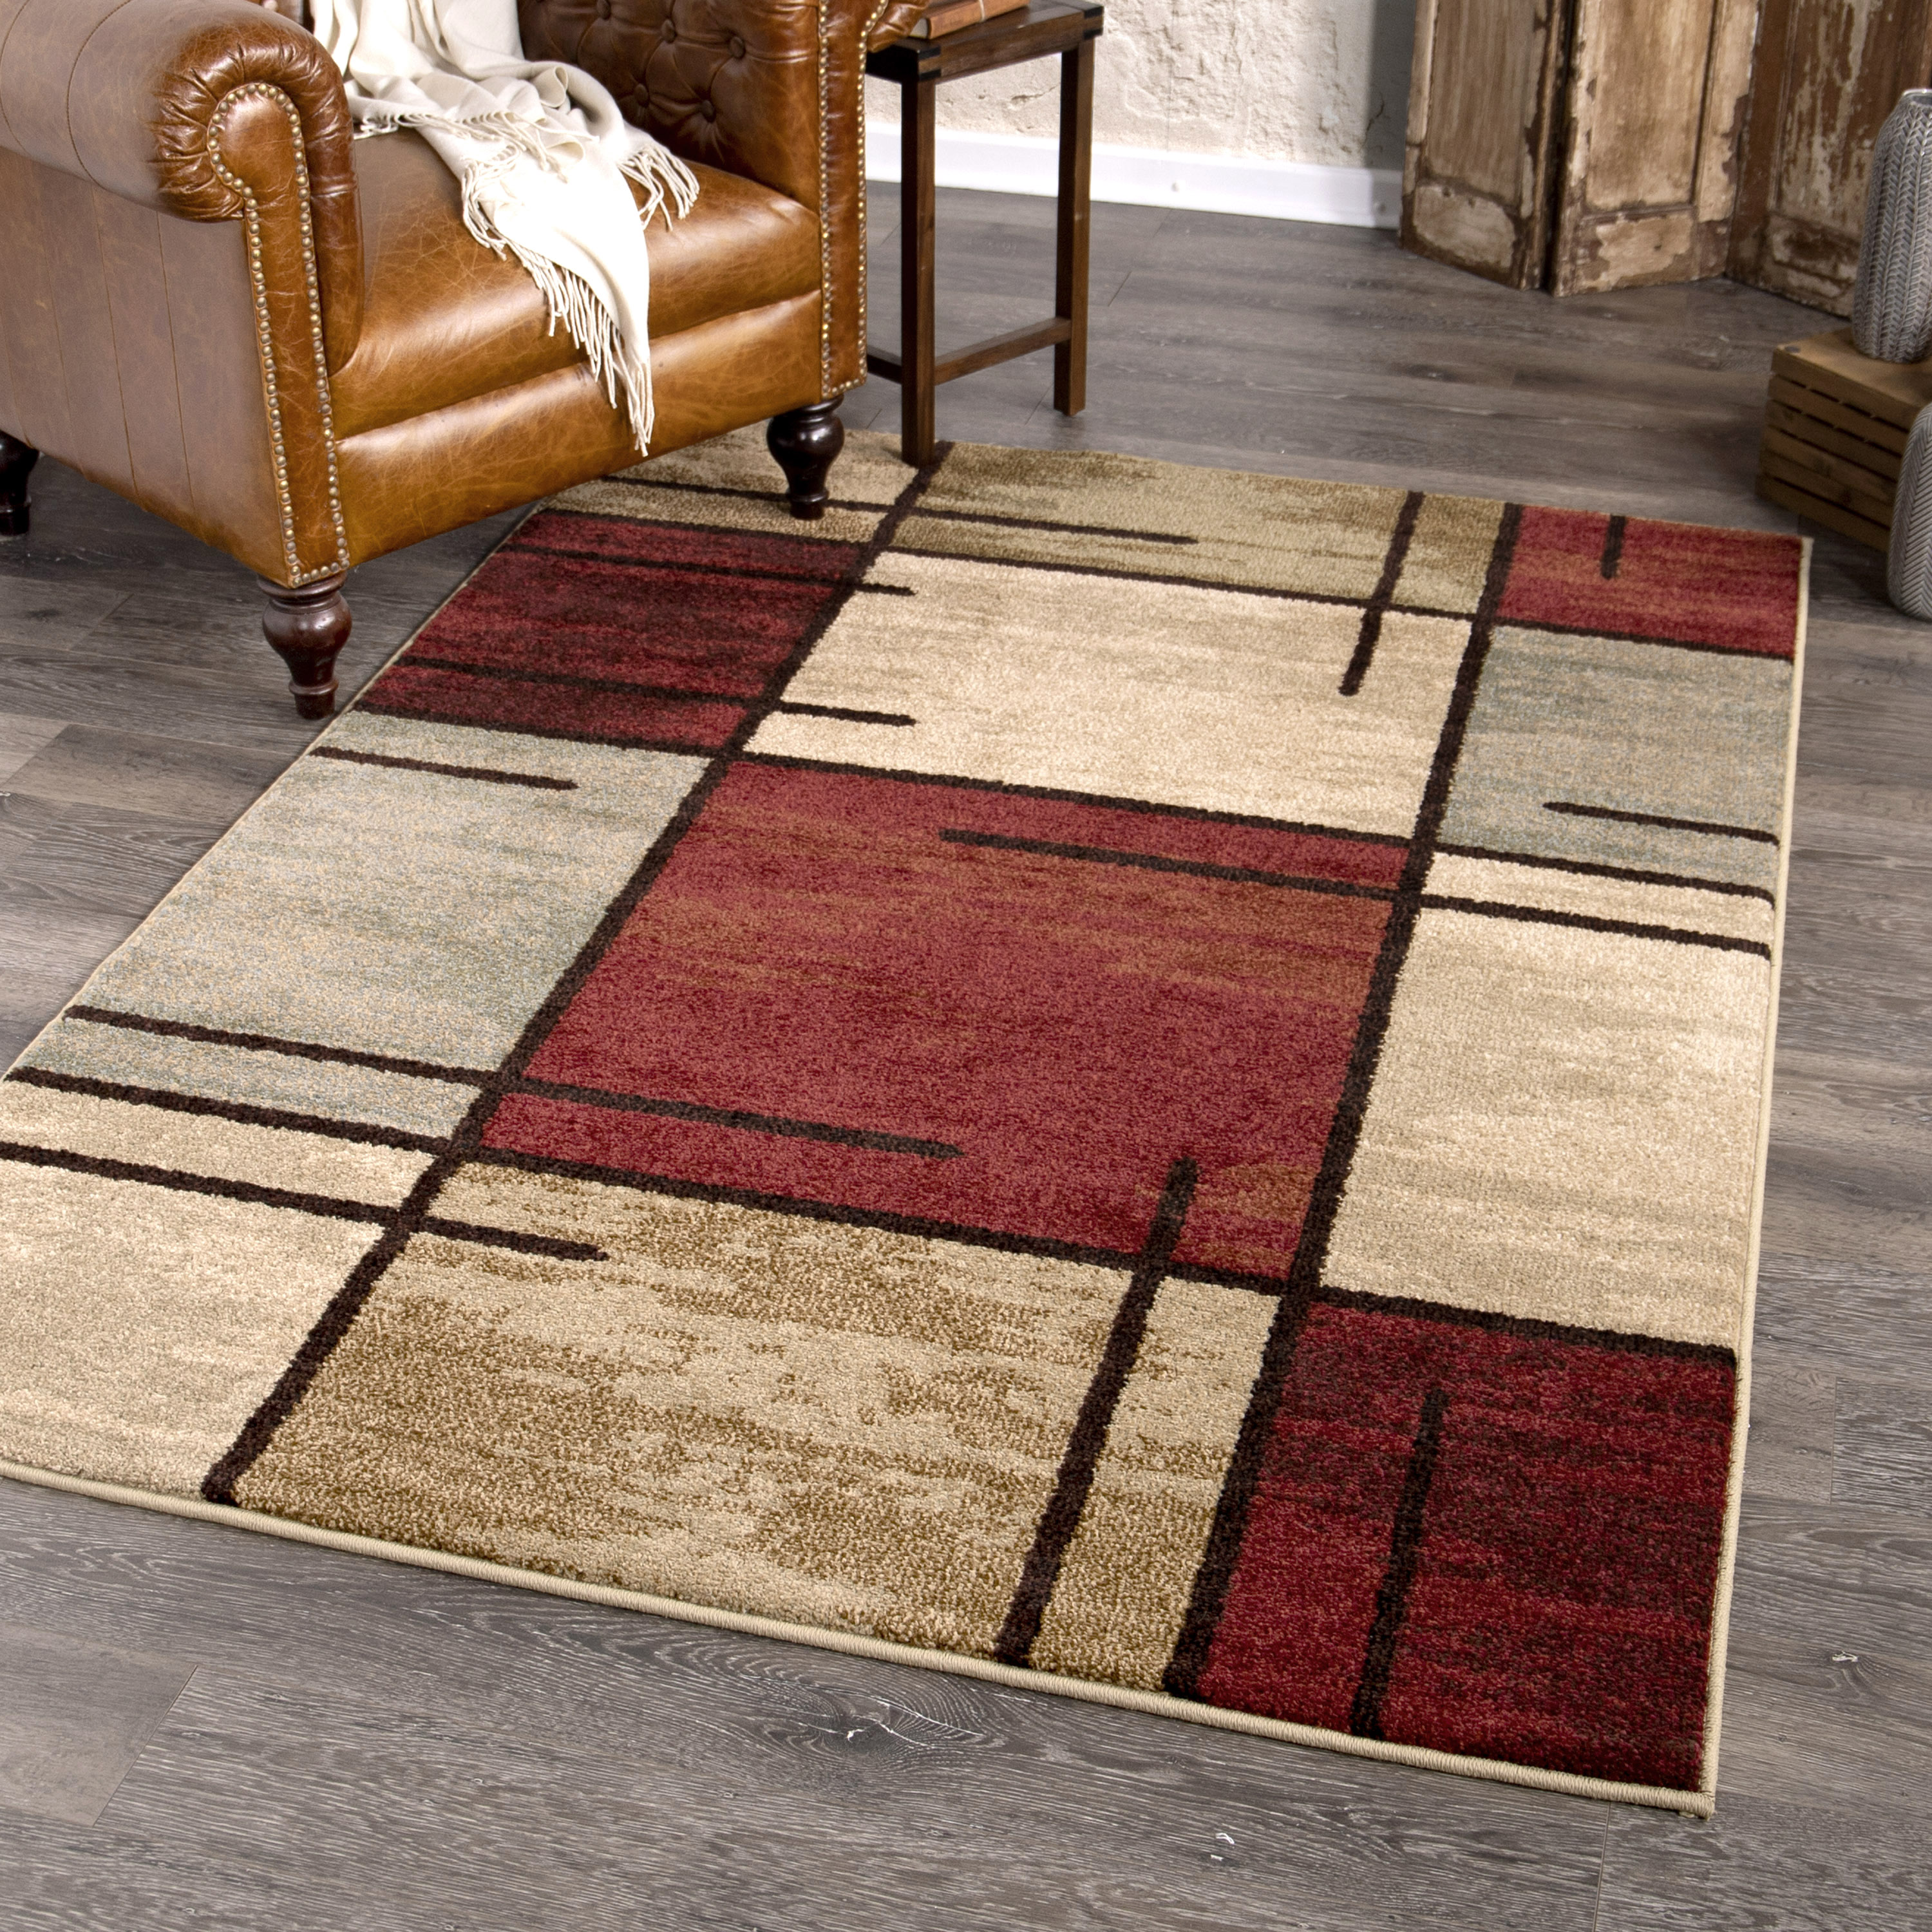 Better Homes Gardens Spice Grid Area Rug Walmart Com Walmart Com